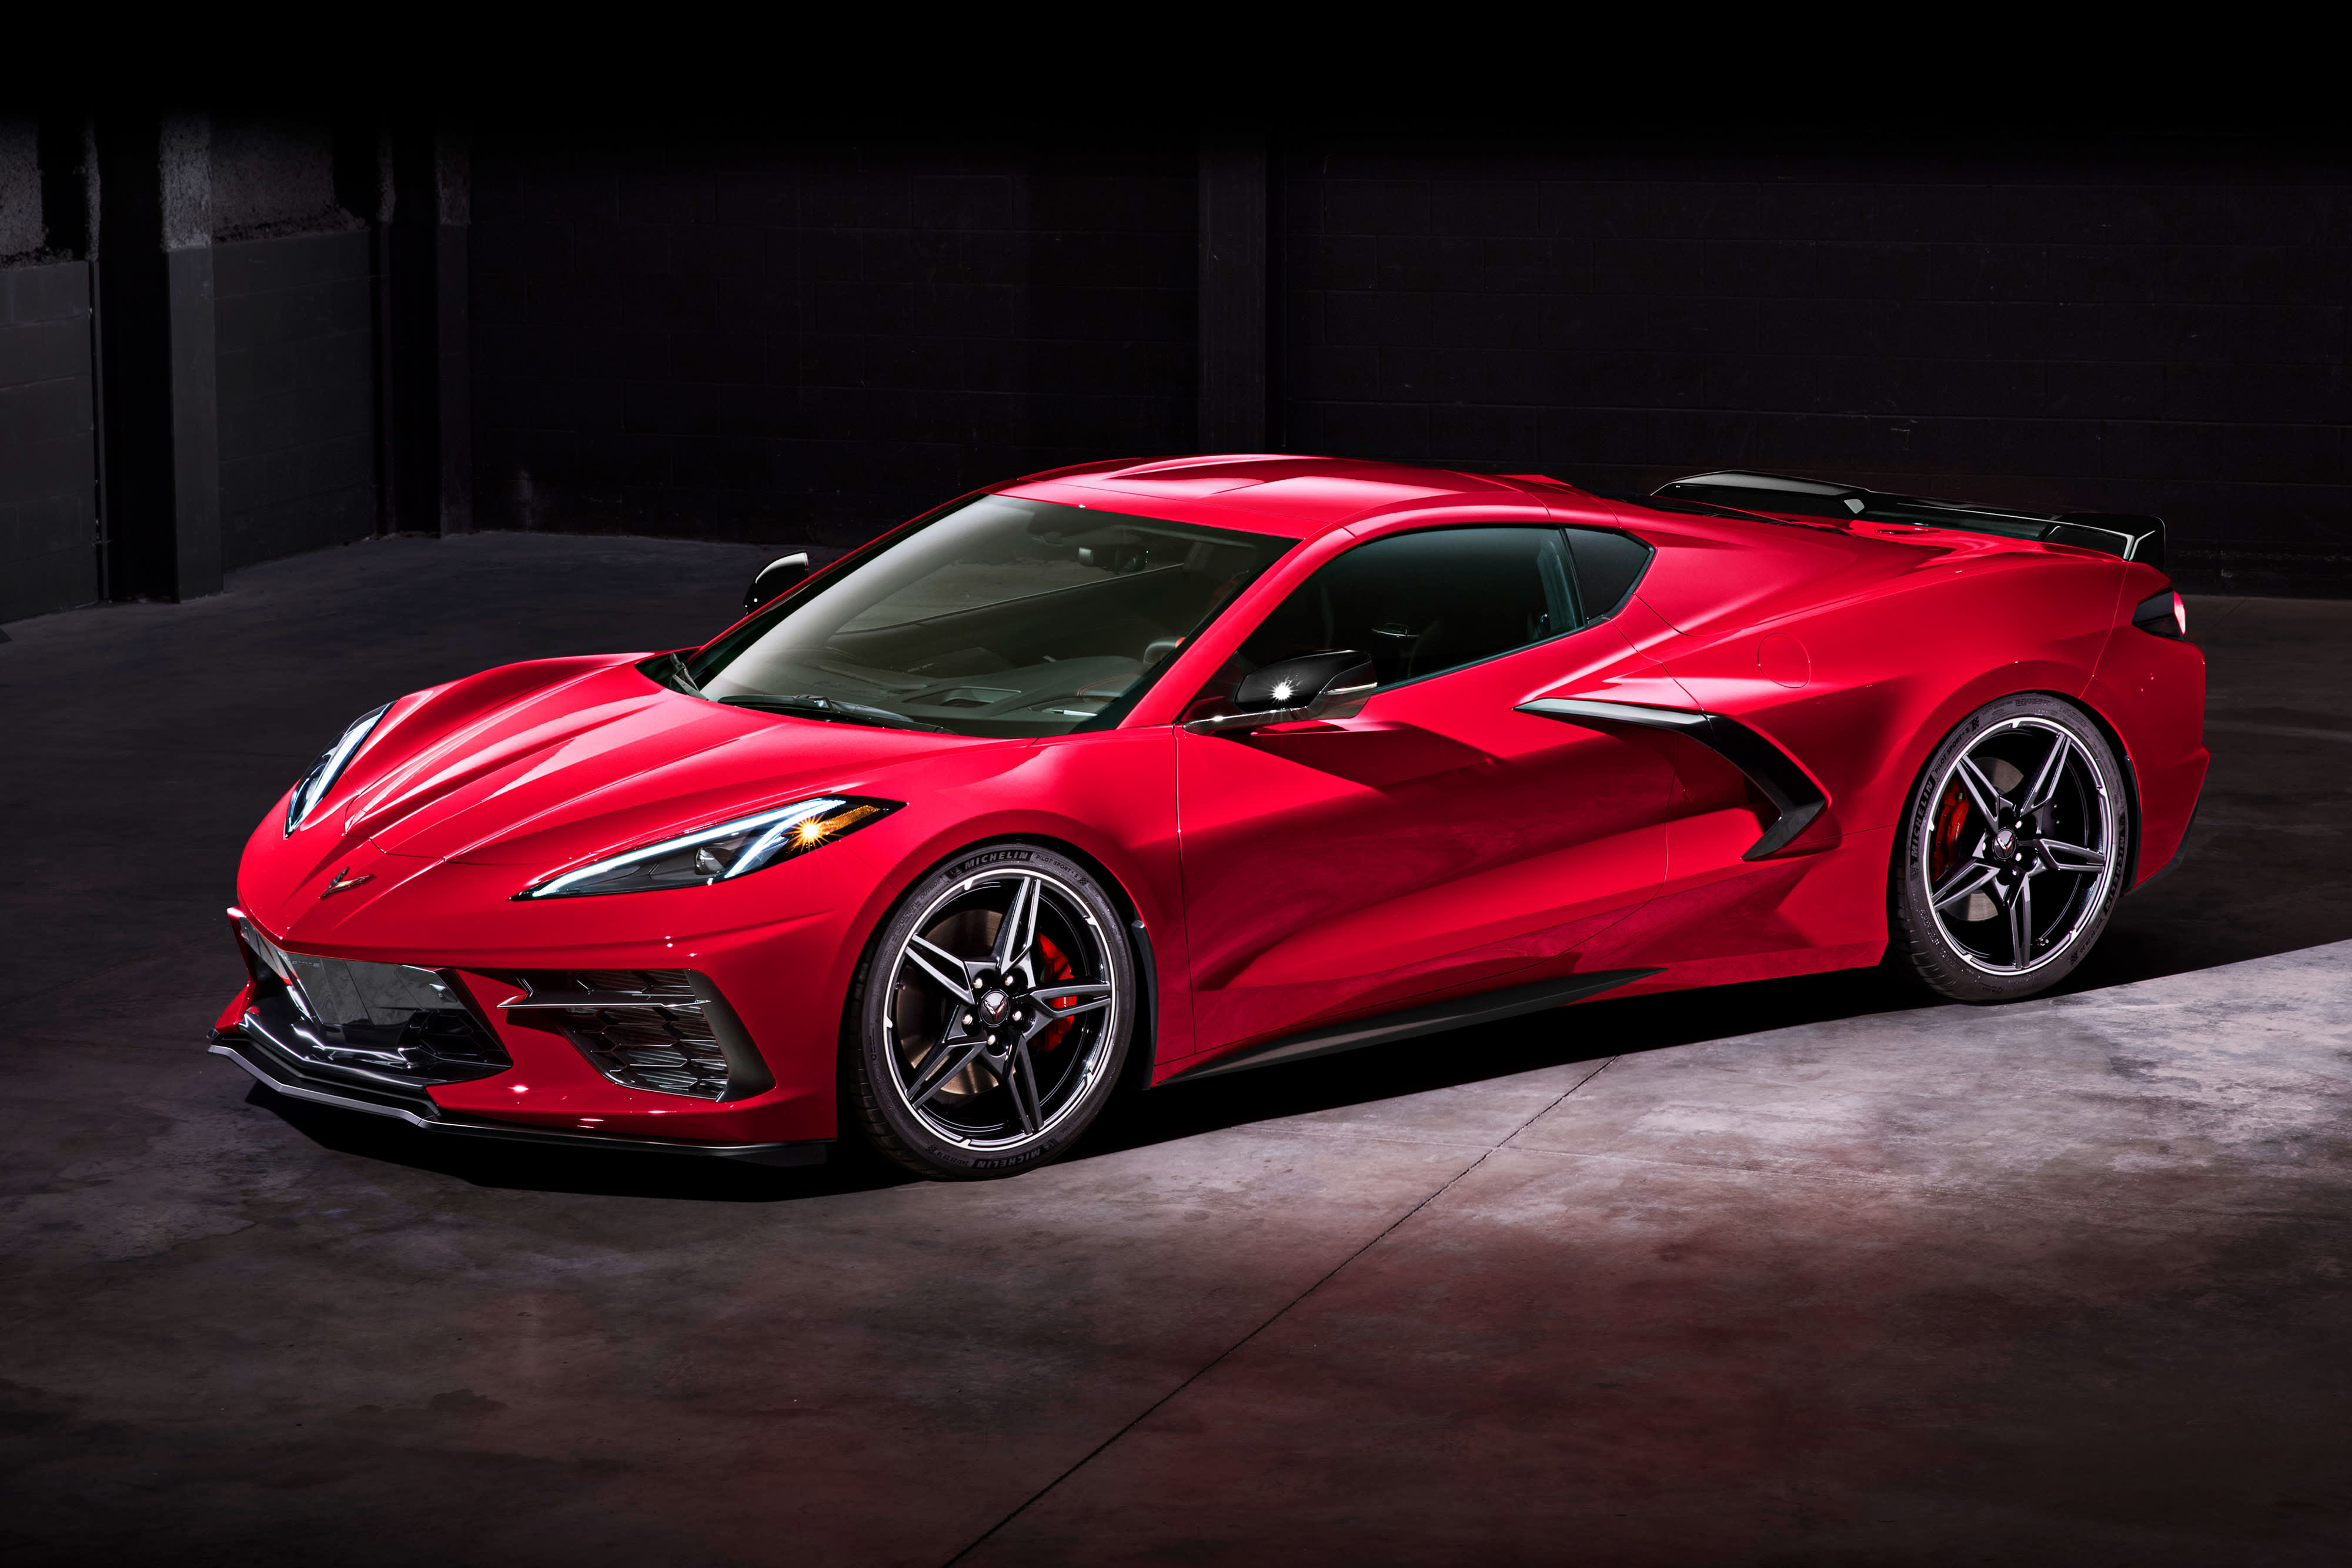 The new 2020 Corvette Stingray revealed. Guns for Ferrari with Chevy's first mid-engine design